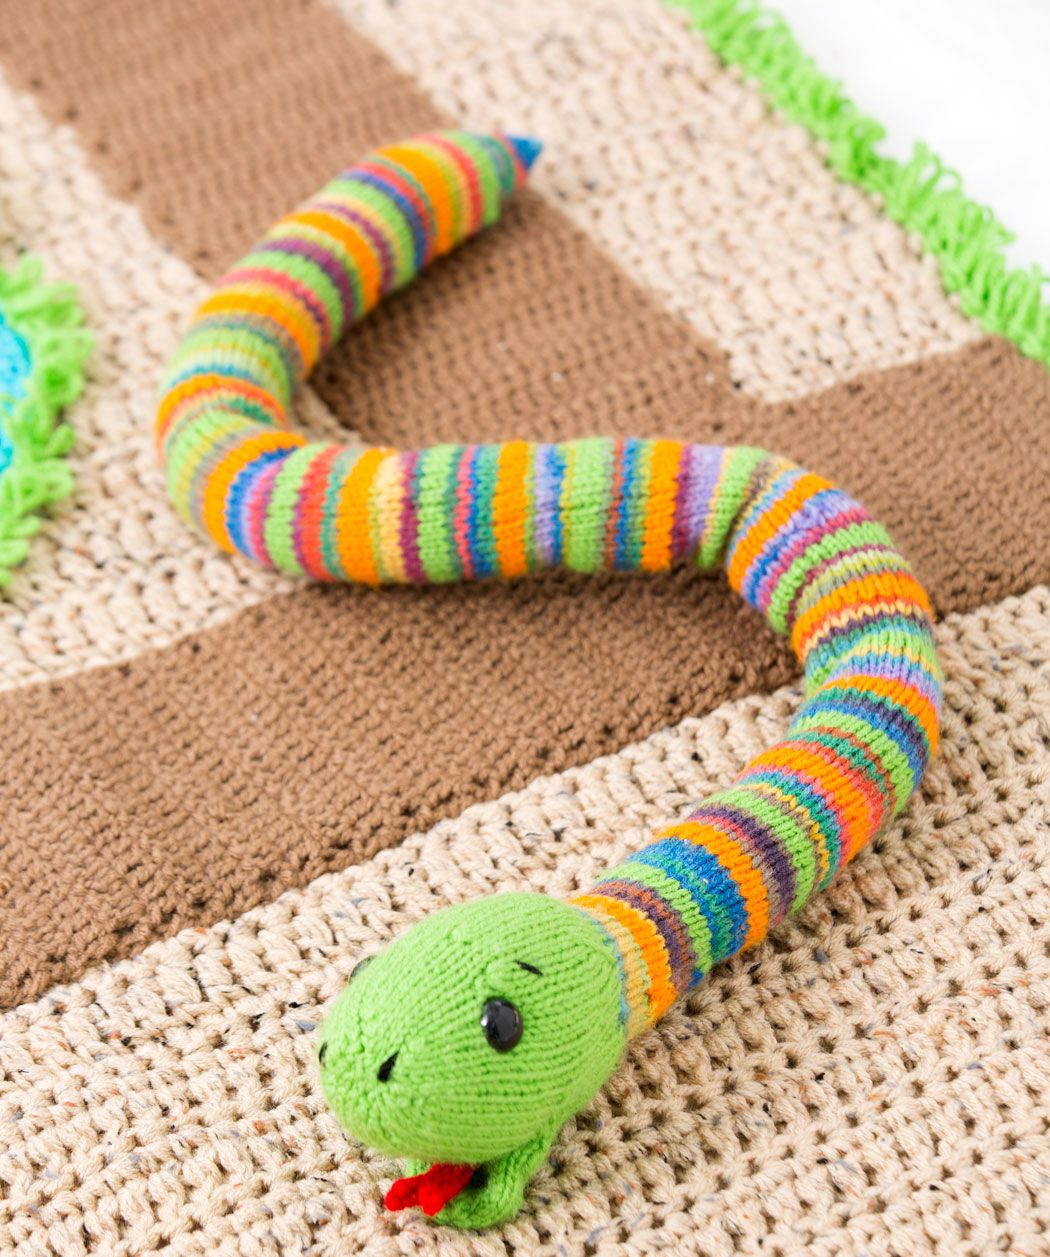 Friendly snake loom knit ideas for addy hudson pinterest friendly snake free knitting pattern from red heart yarns bankloansurffo Choice Image